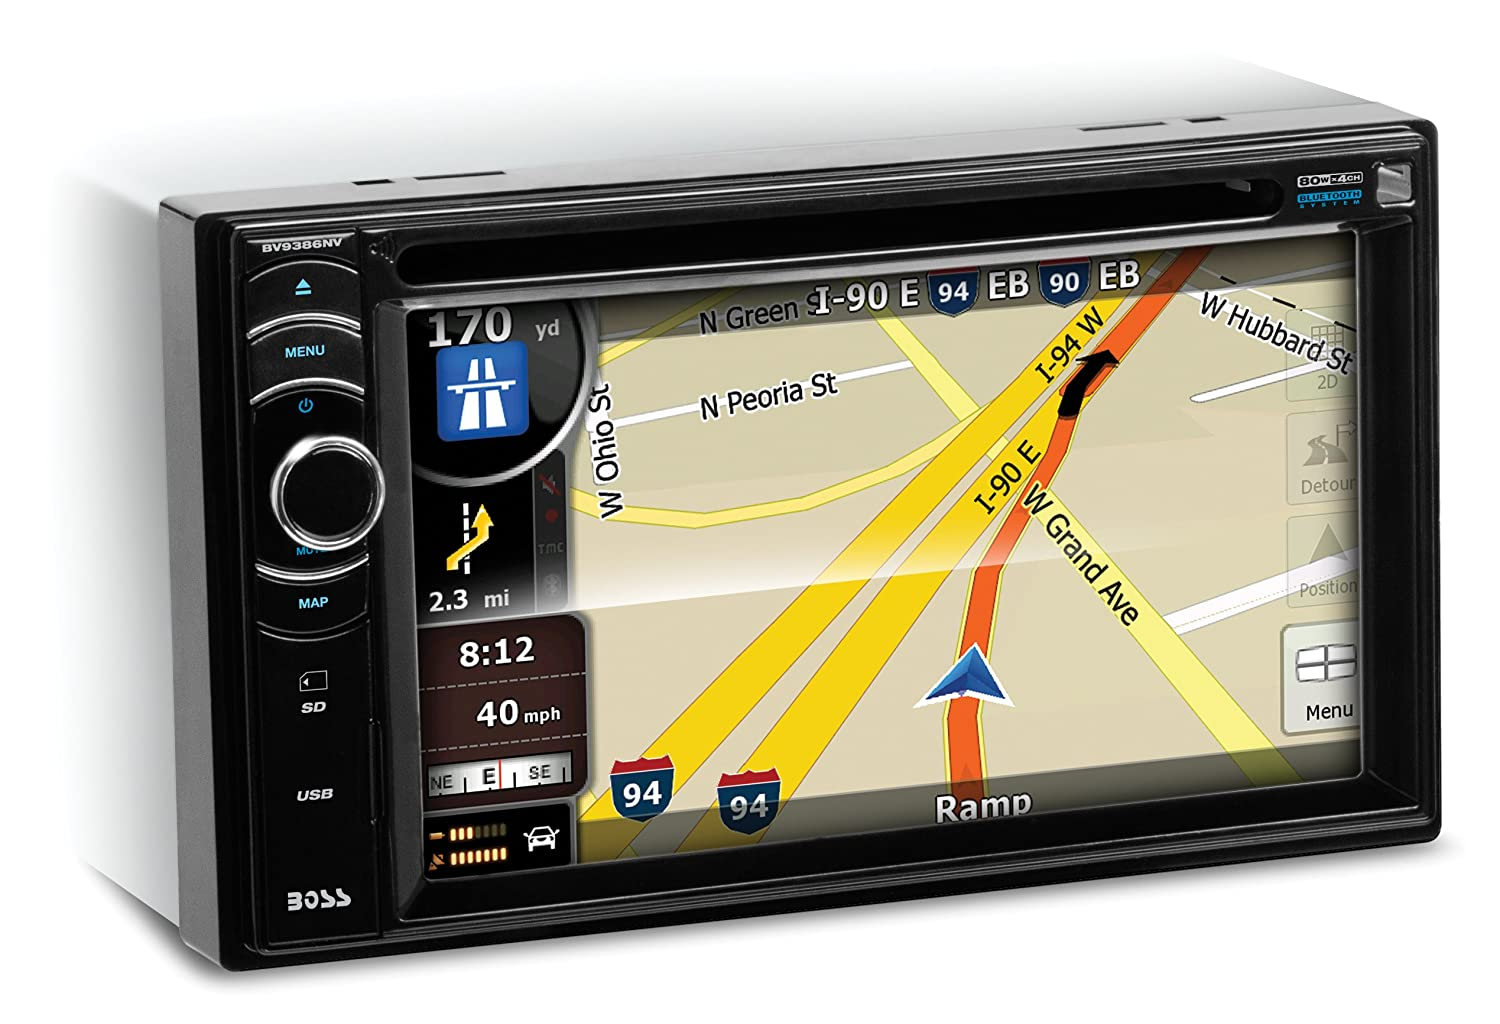 Best in dash navigation-Boss Audio bv9386nv